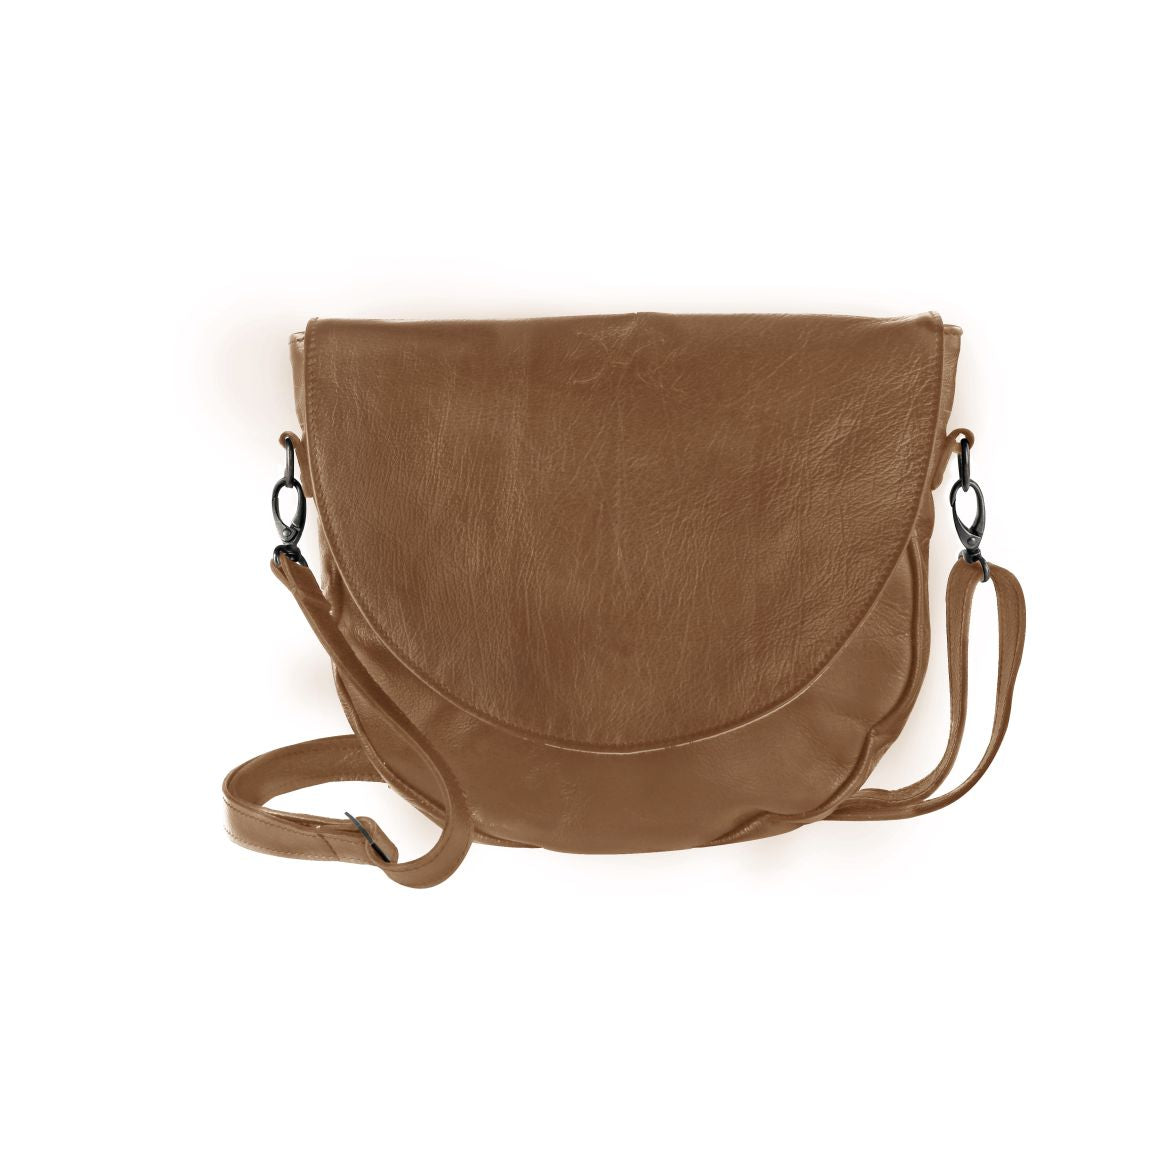 Thandana Messenger Saddle Sling Bag - Hazelnut - Zufrique Boutique